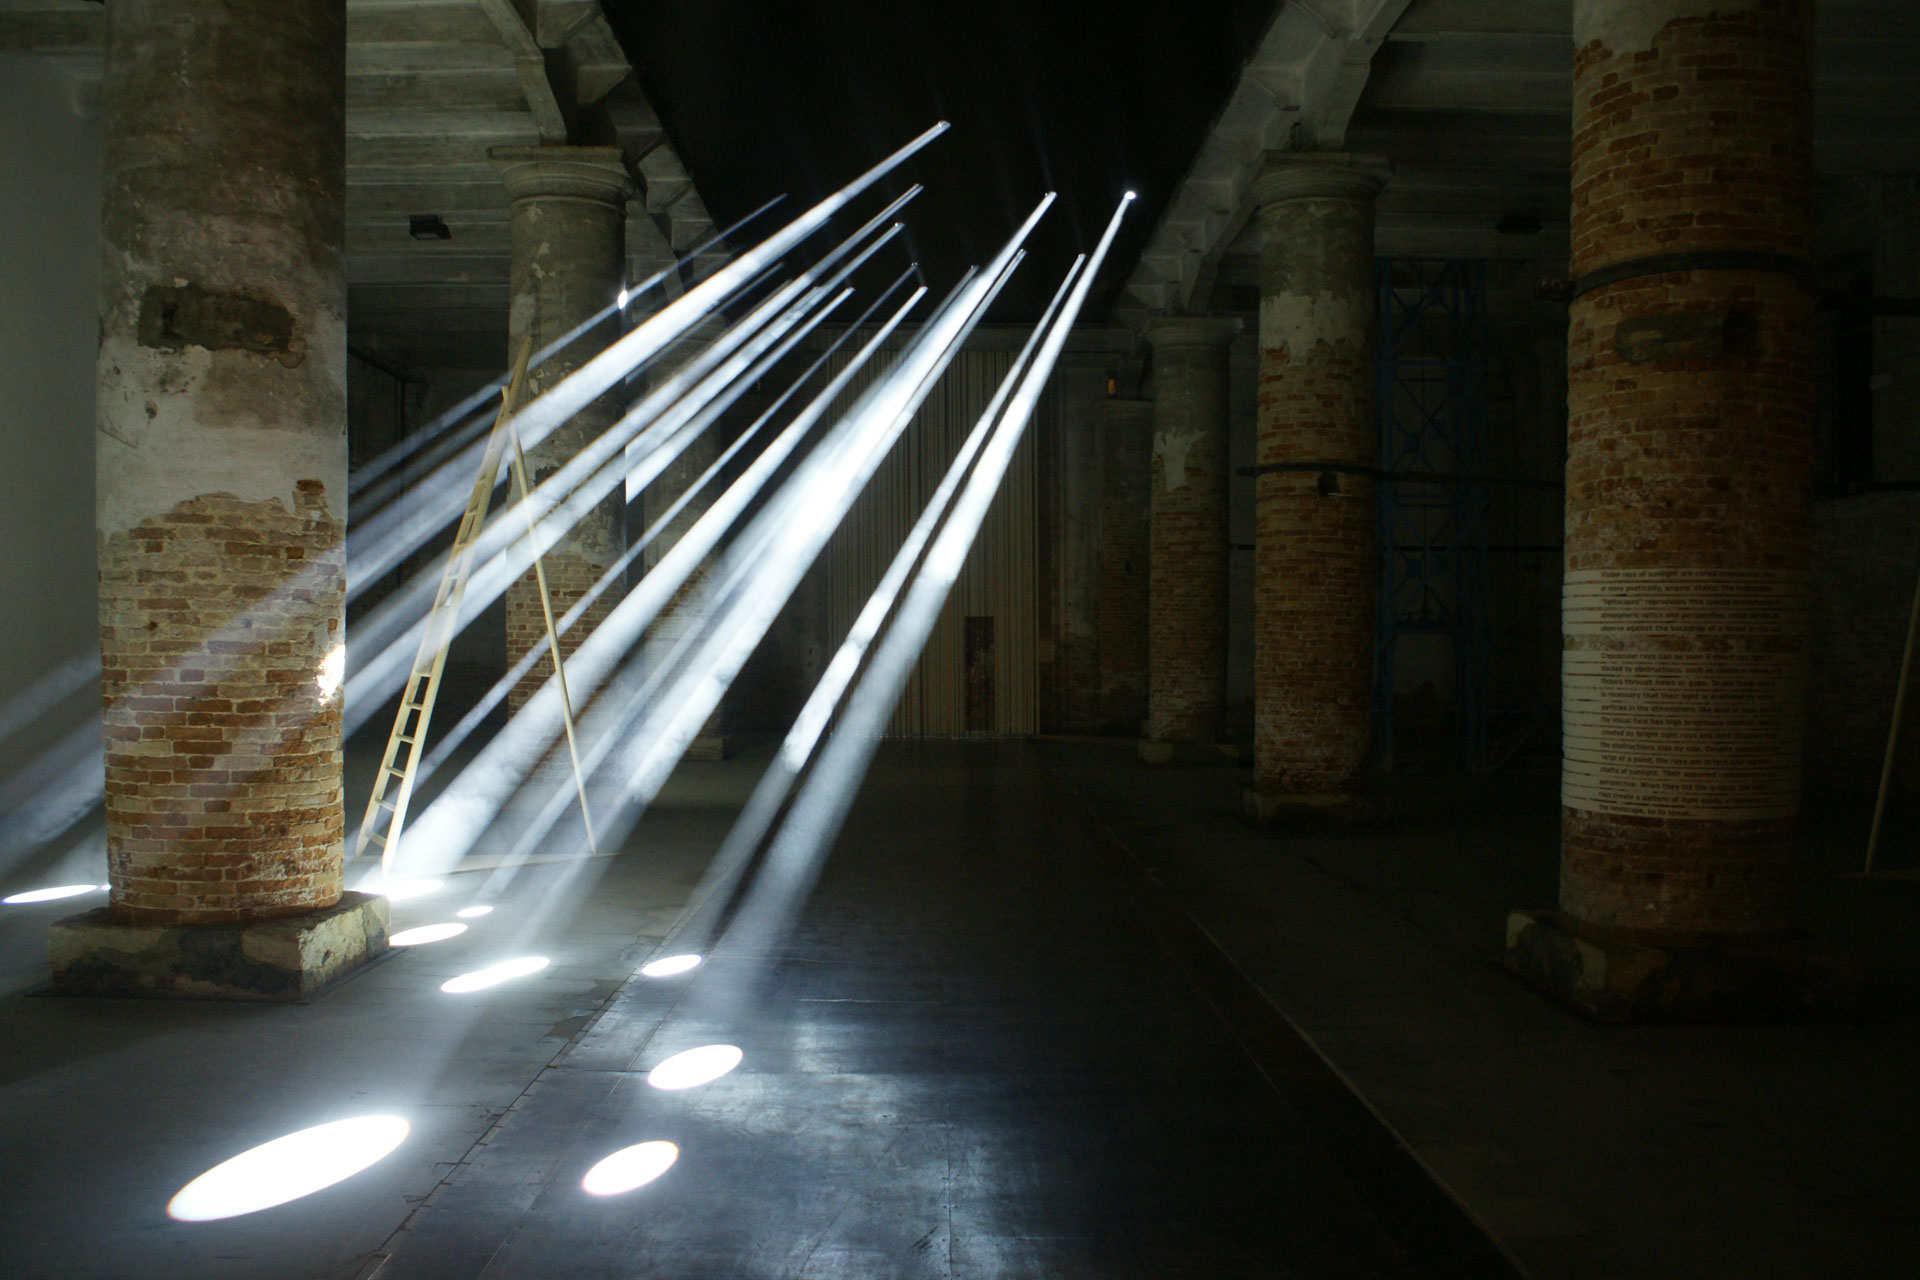 Lightscapes   Local identity – exploring a forgotten resource   Architecture Biennale 2016